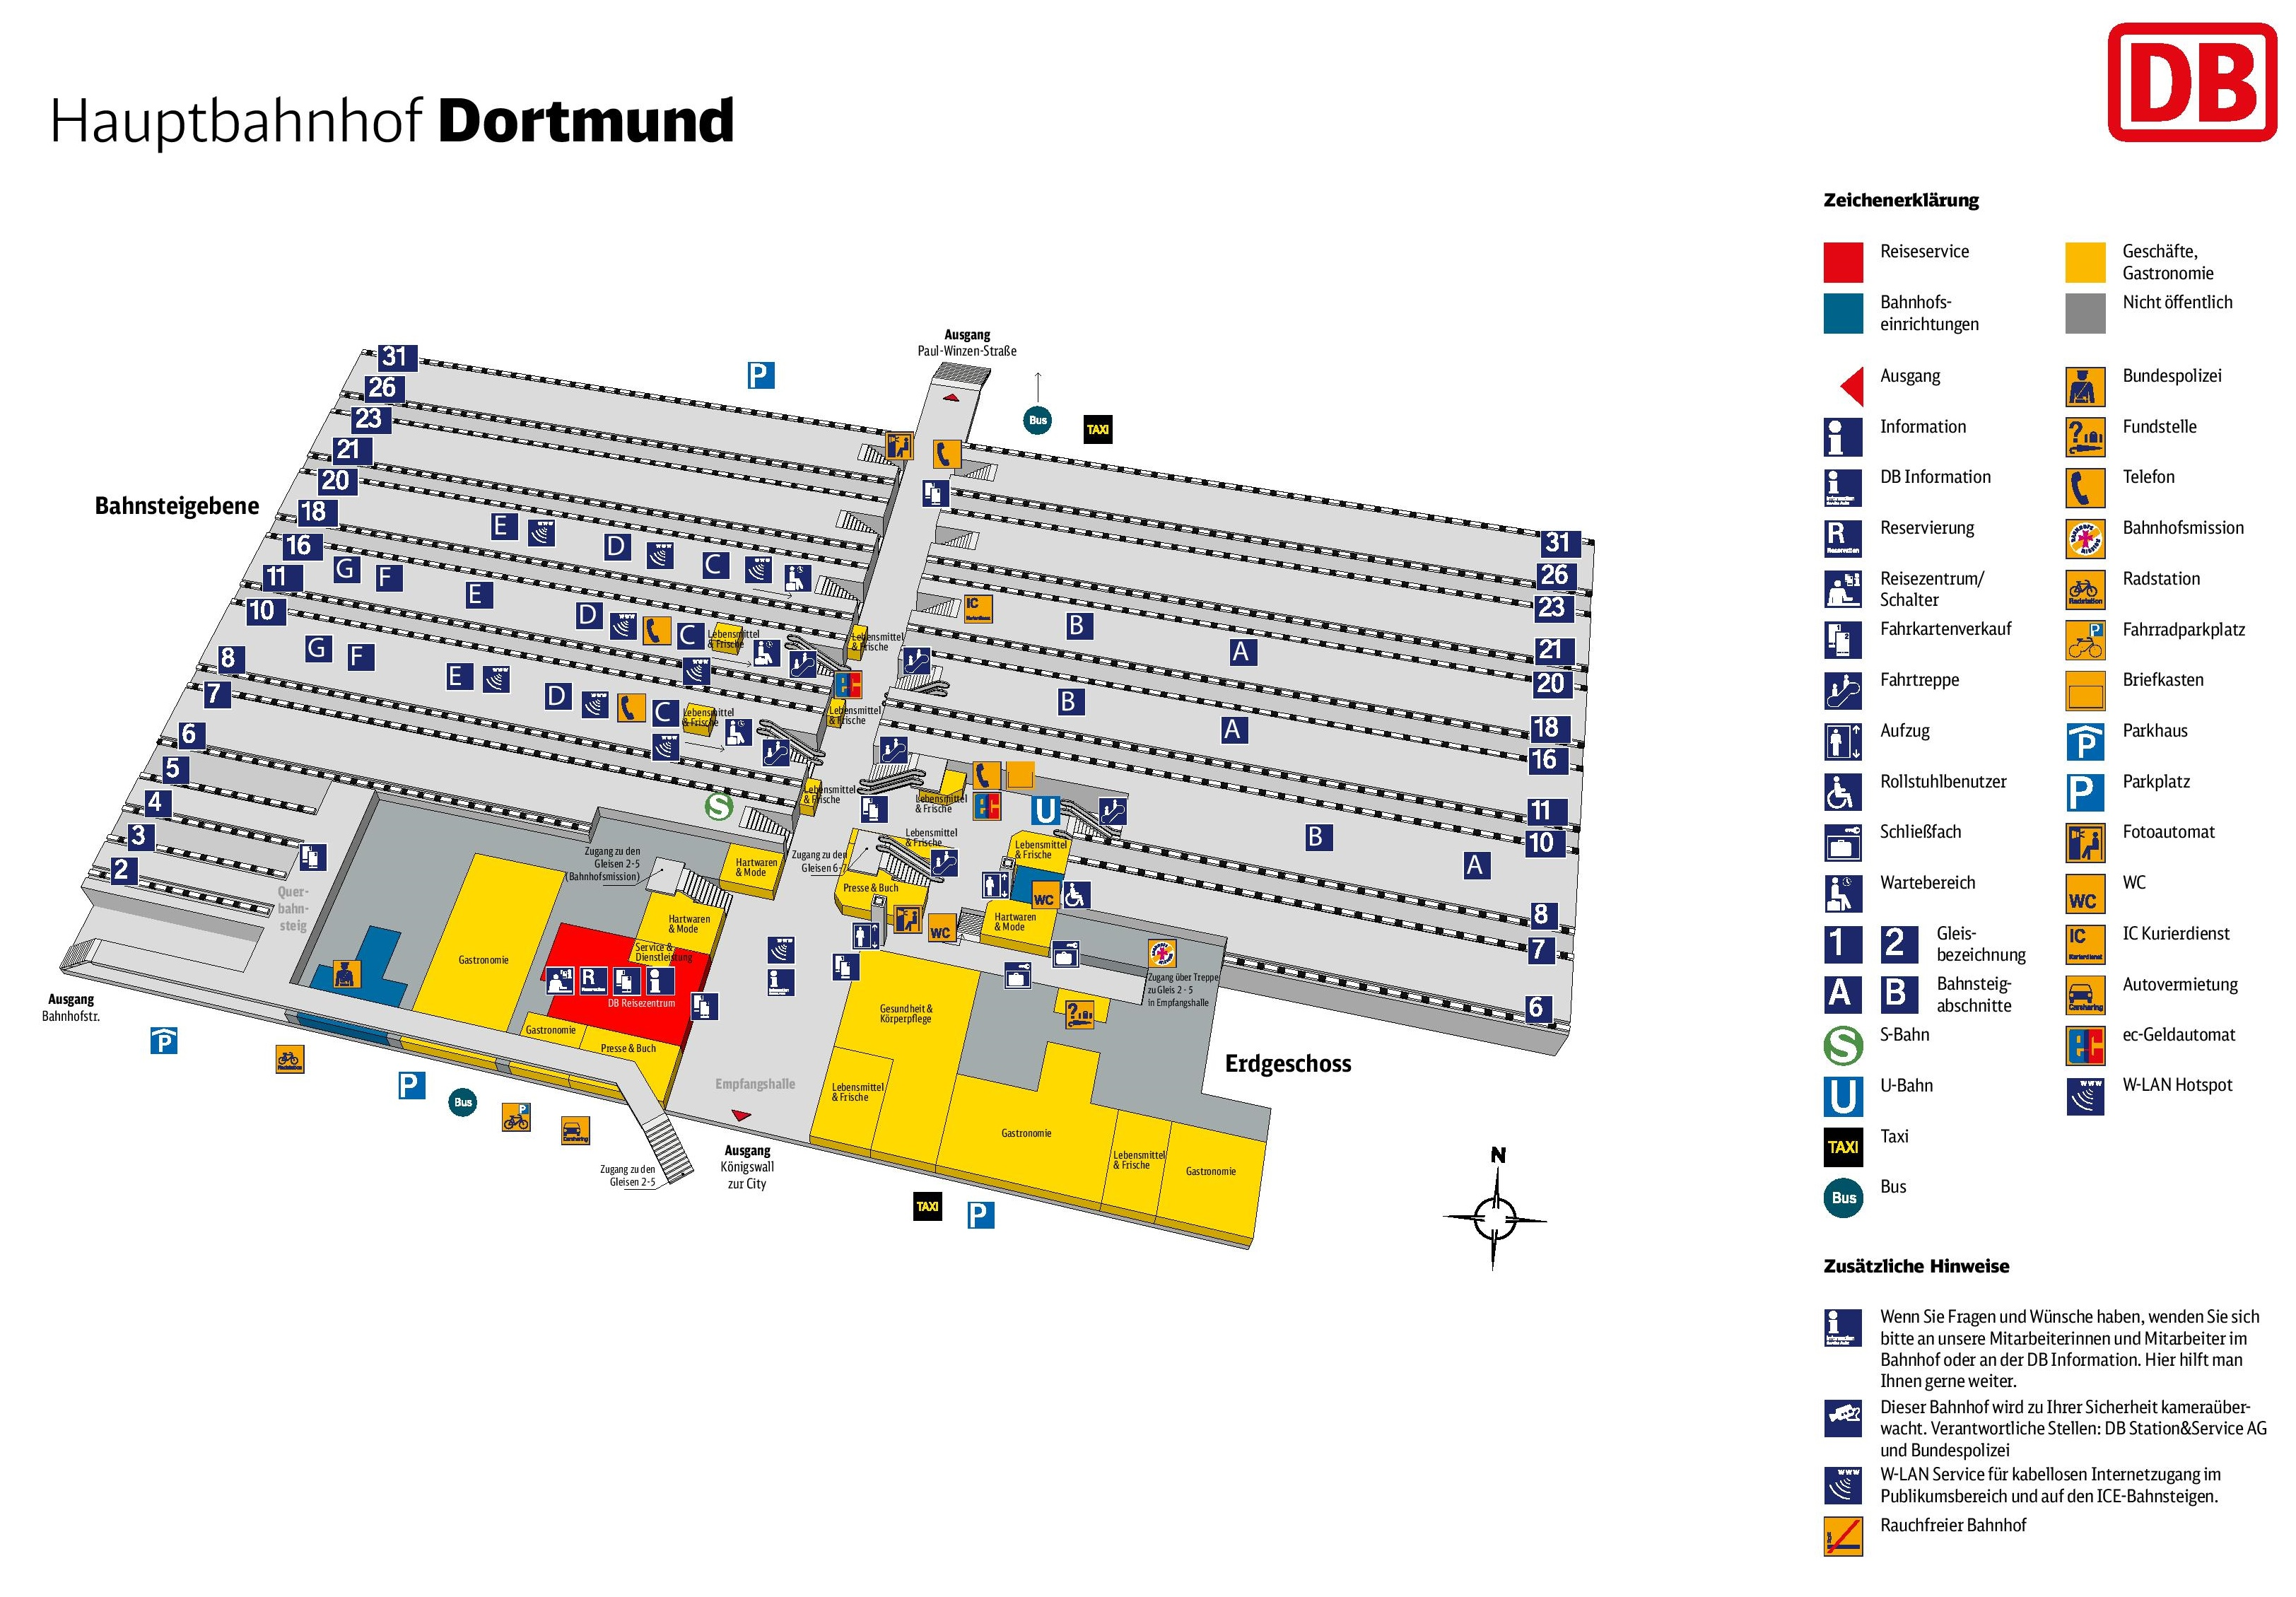 dortmund hauptbahnhof map. Black Bedroom Furniture Sets. Home Design Ideas